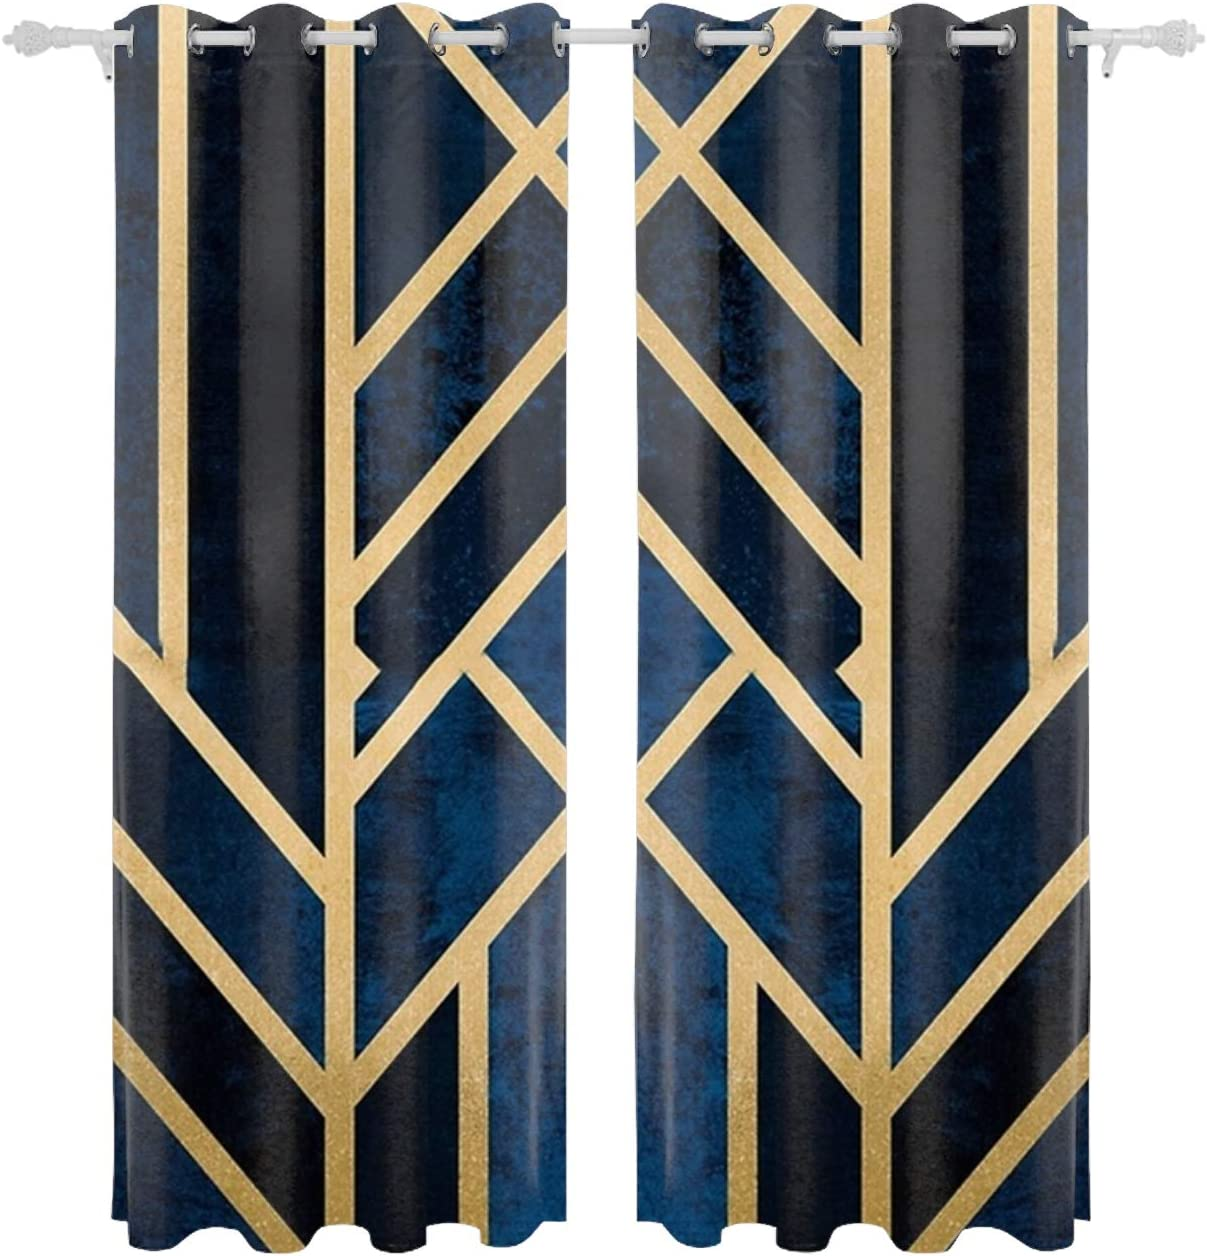 Verna Christopher Art Deco Midnight Curtain Panels For Bedroom Window Treatments Room Darkening Vintage Multicolor Curtains For Living Room Patio Door Kitchen Dining